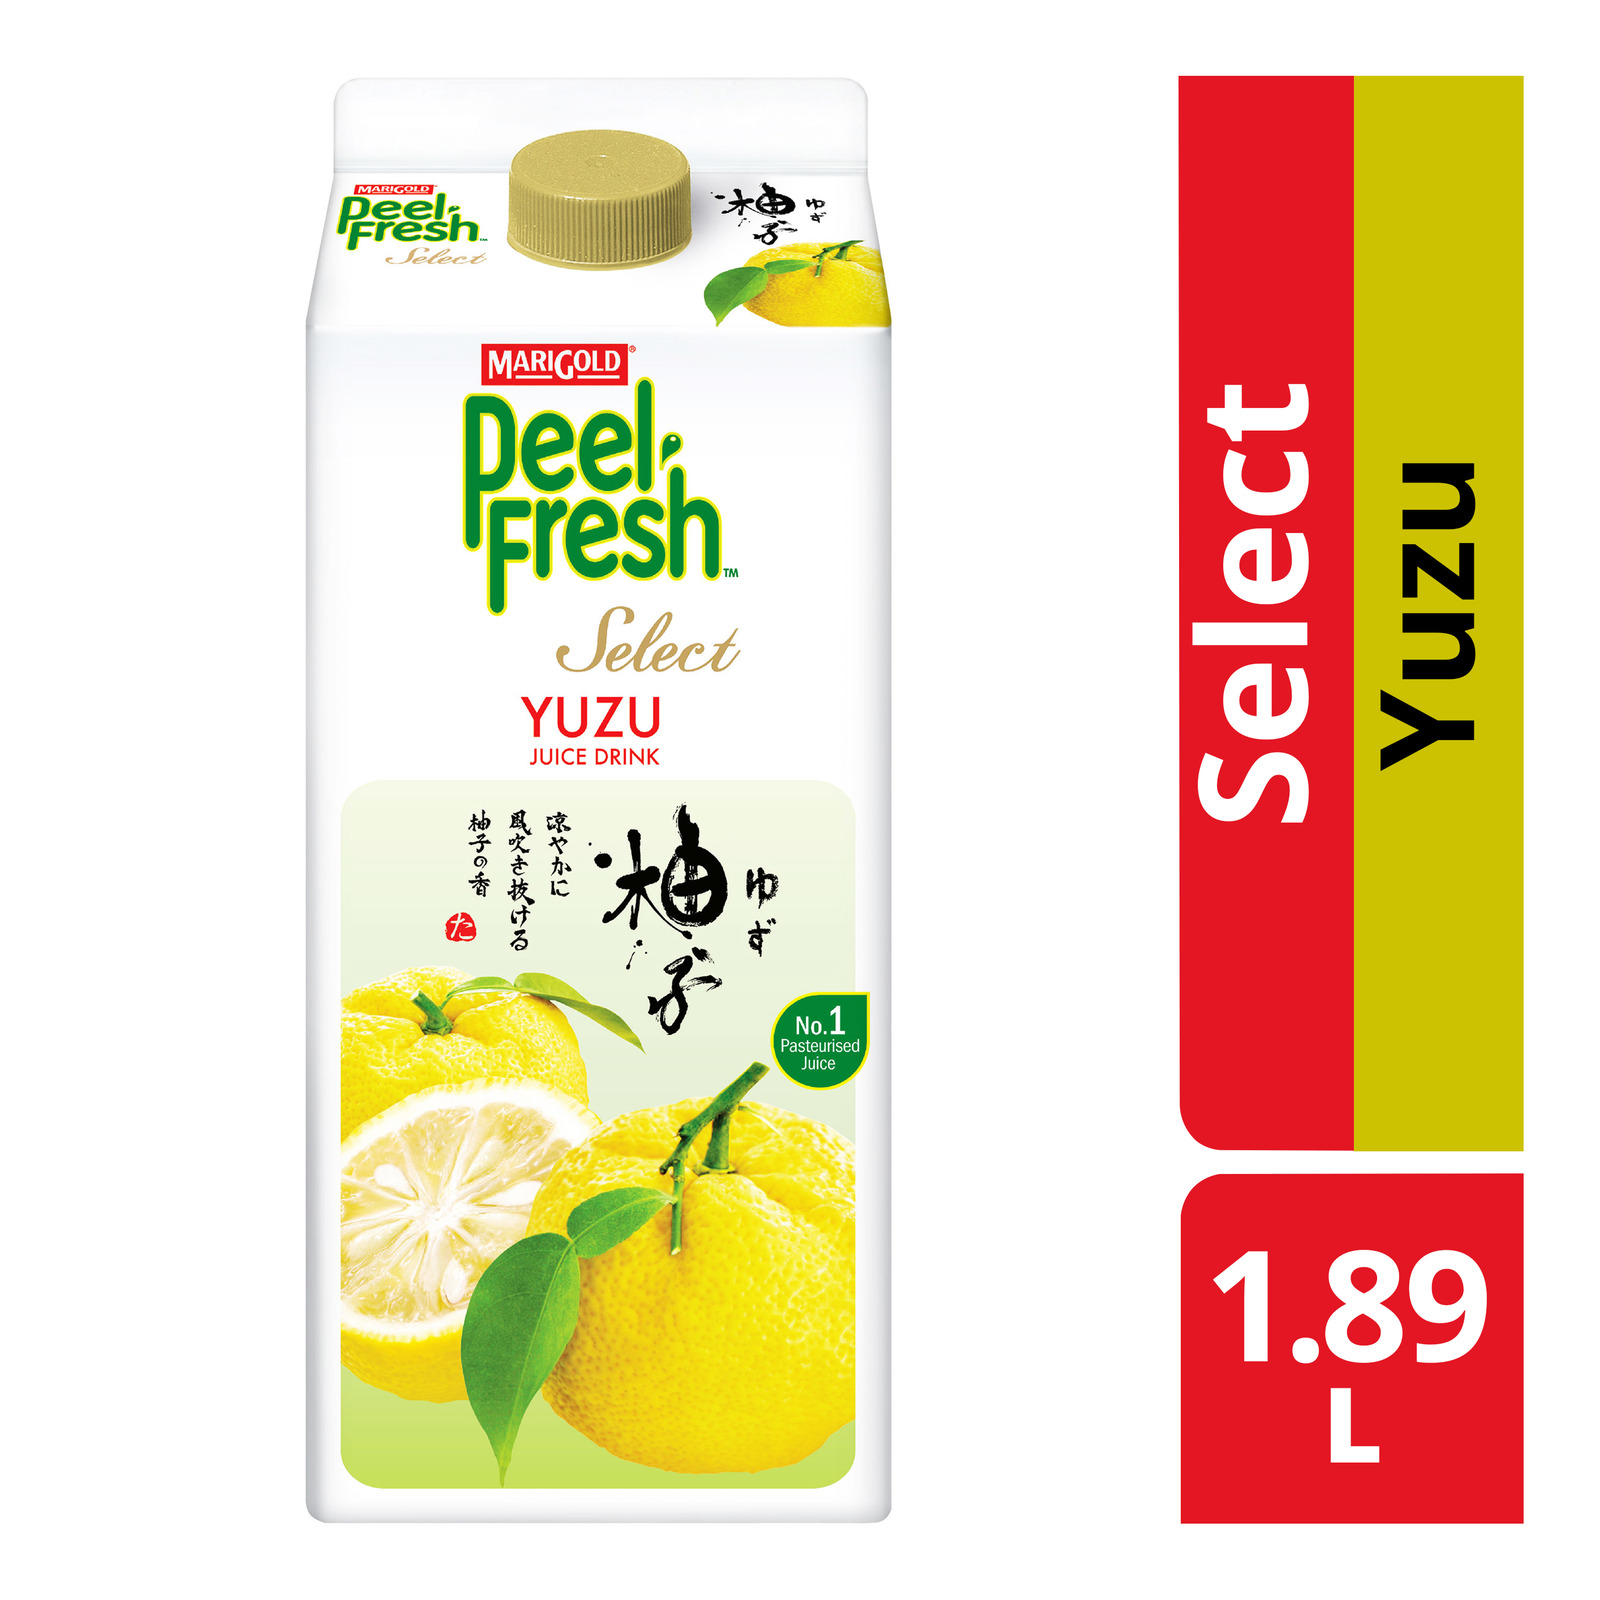 Marigold Peel Fresh Select Juice - Yuzu